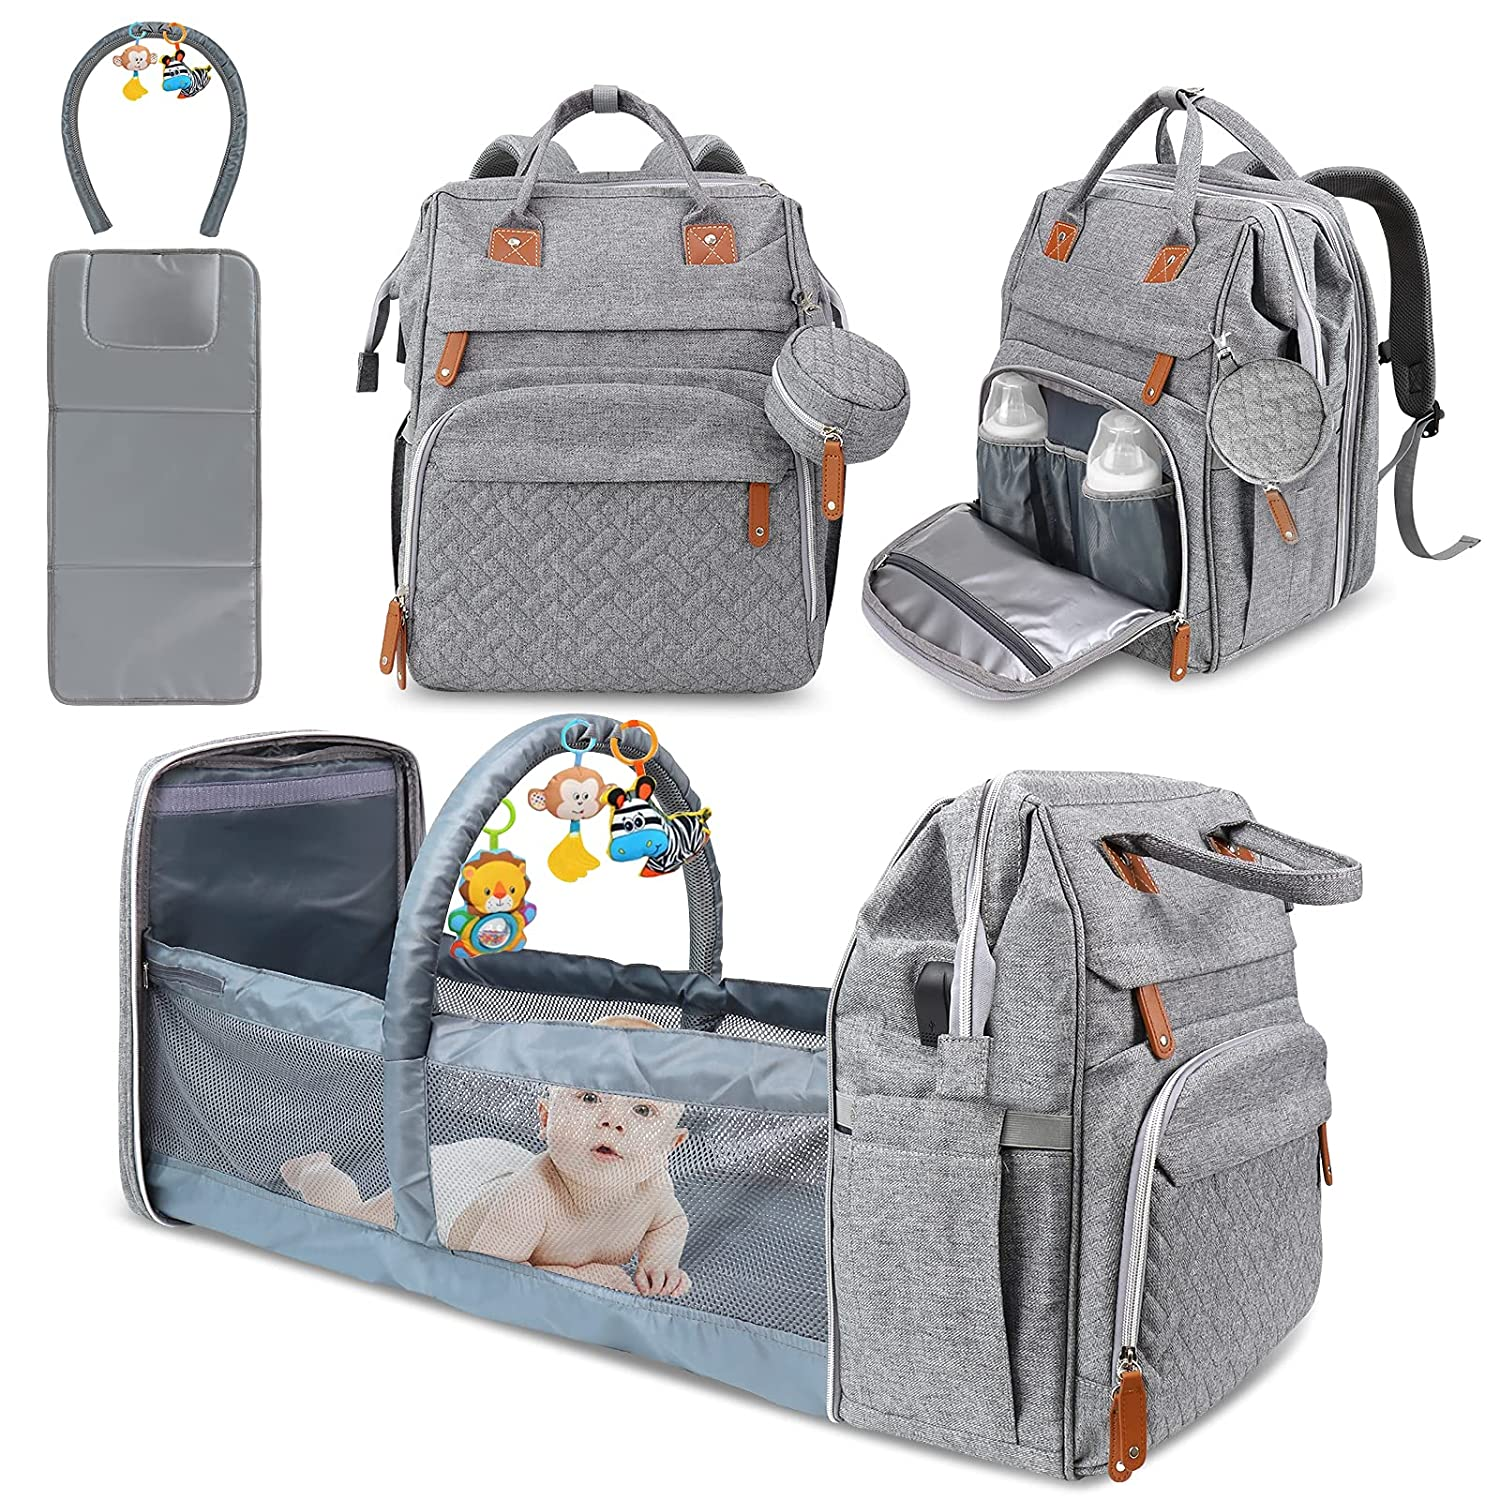 Baby Diaper Bag Backpack, Diaper Changing Station,Derjunstar Portable Crib Bakcpack for Boys Girls,Waterproof Changing Pad,USB Charging Port,Pacifier Case, Sunshade and Toy Bar